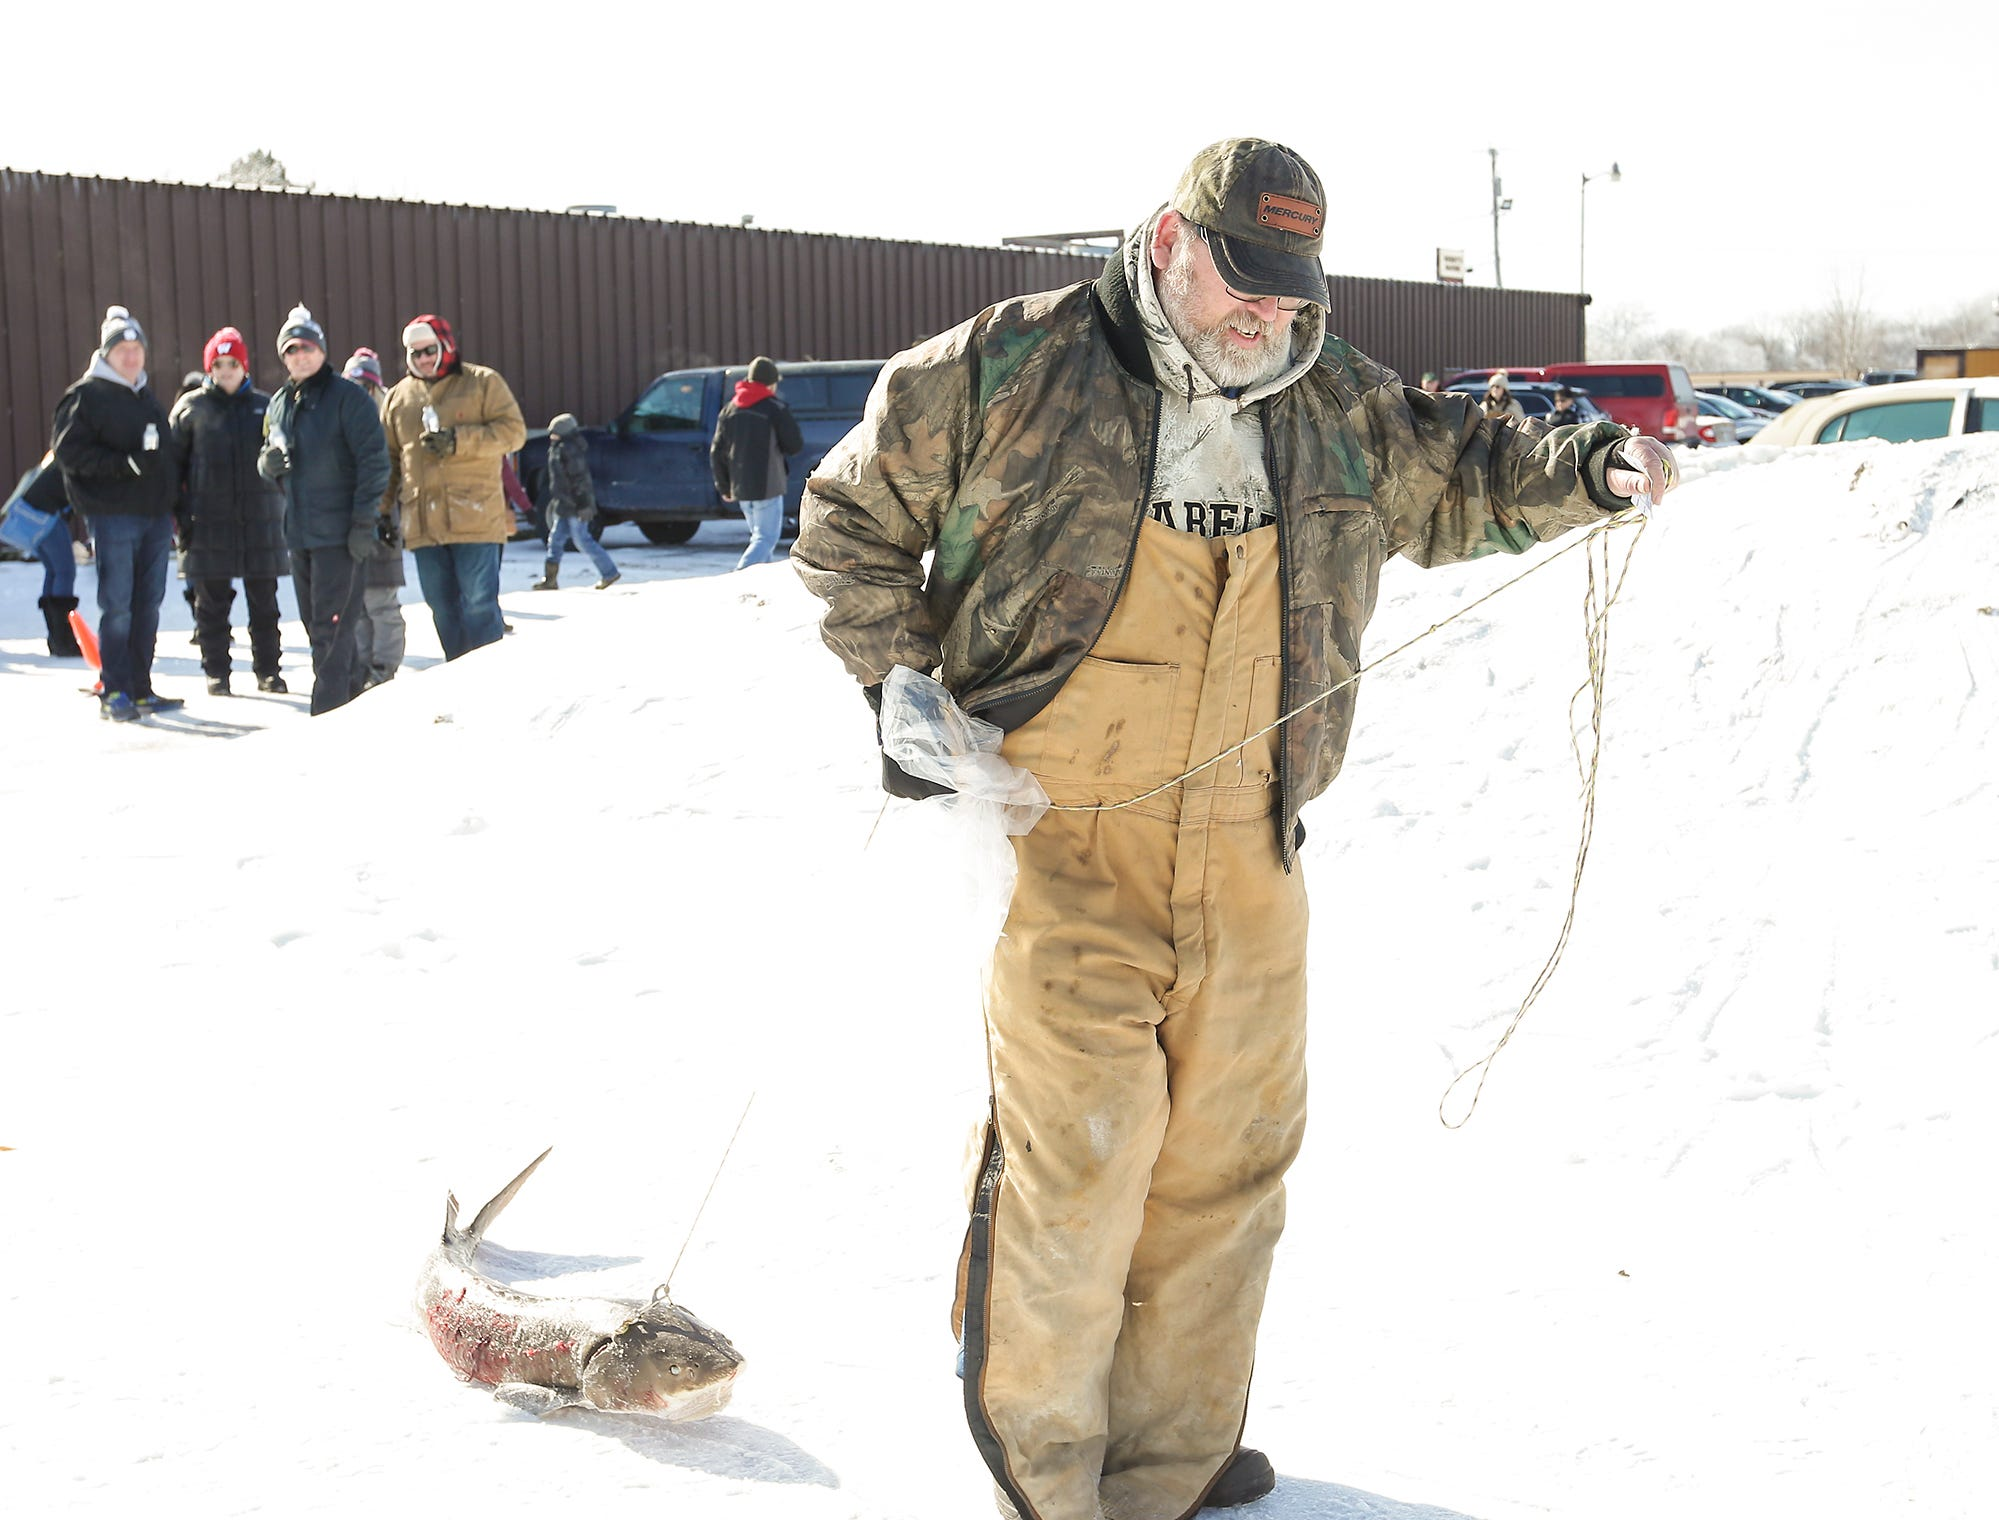 Steve Herzberg of Oshkosh drags a 27 pound sturgeon he speared away from a weighing station Saturday, February 9, 2019 at Wendt's on the Lake between Fond du Lac and Oshkosh. Sturgeon spearing season runs from February 9, 2019 through February 24, 2019 on Lake Winnebago or until any